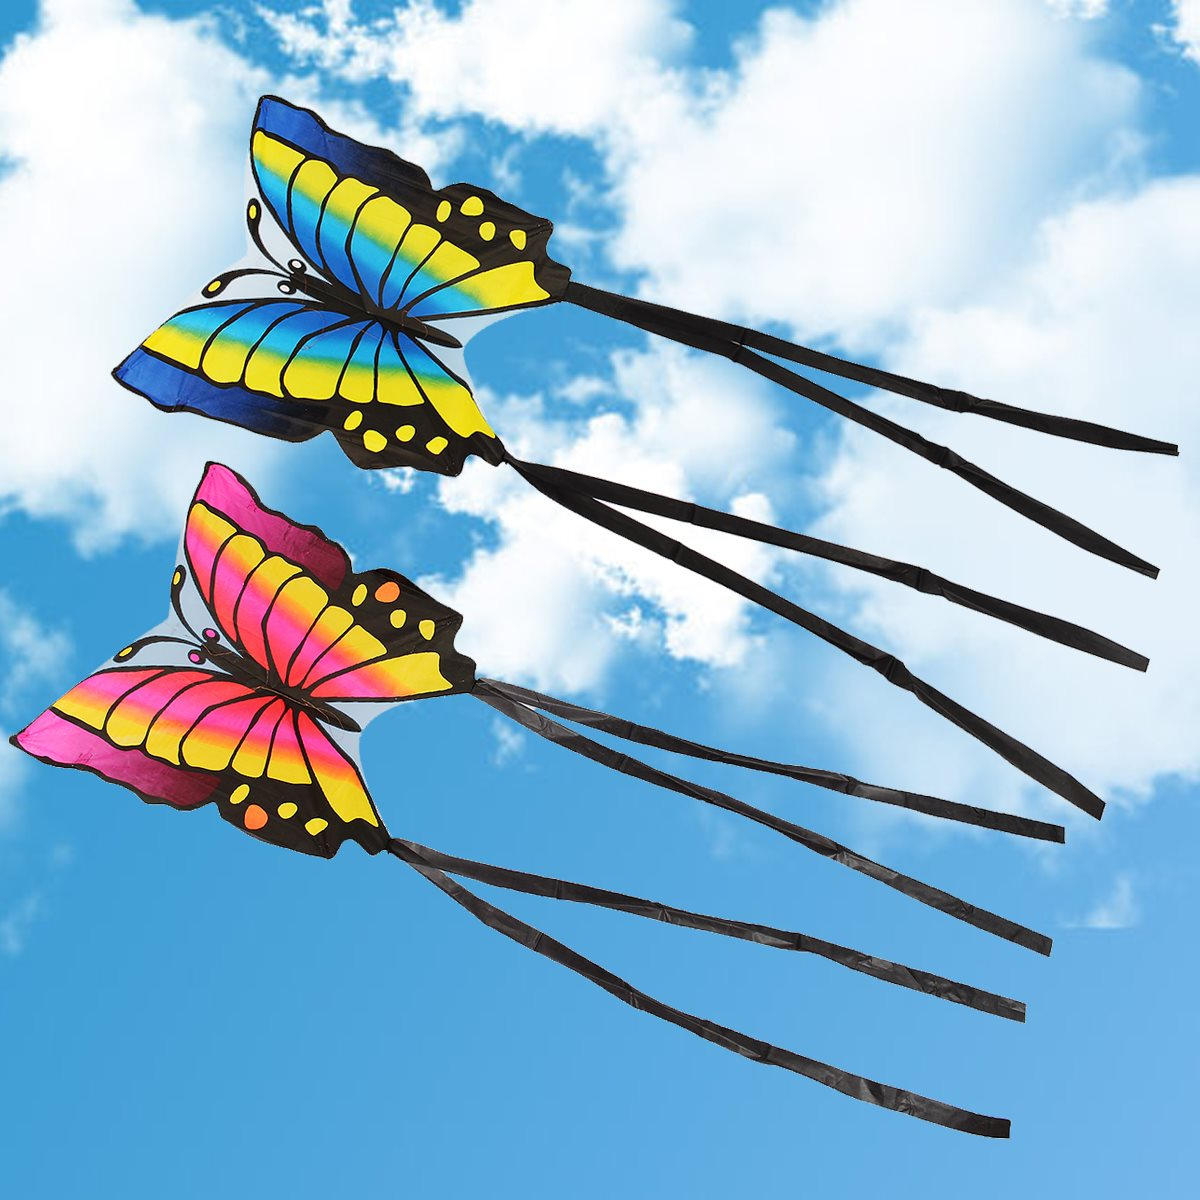 Children's Butterfly Kite Easy to Fly Single Line Kite Tail 1.5M Outdoor Funny Sports Toy Gift Funny Sport Outdoor Playing Toys